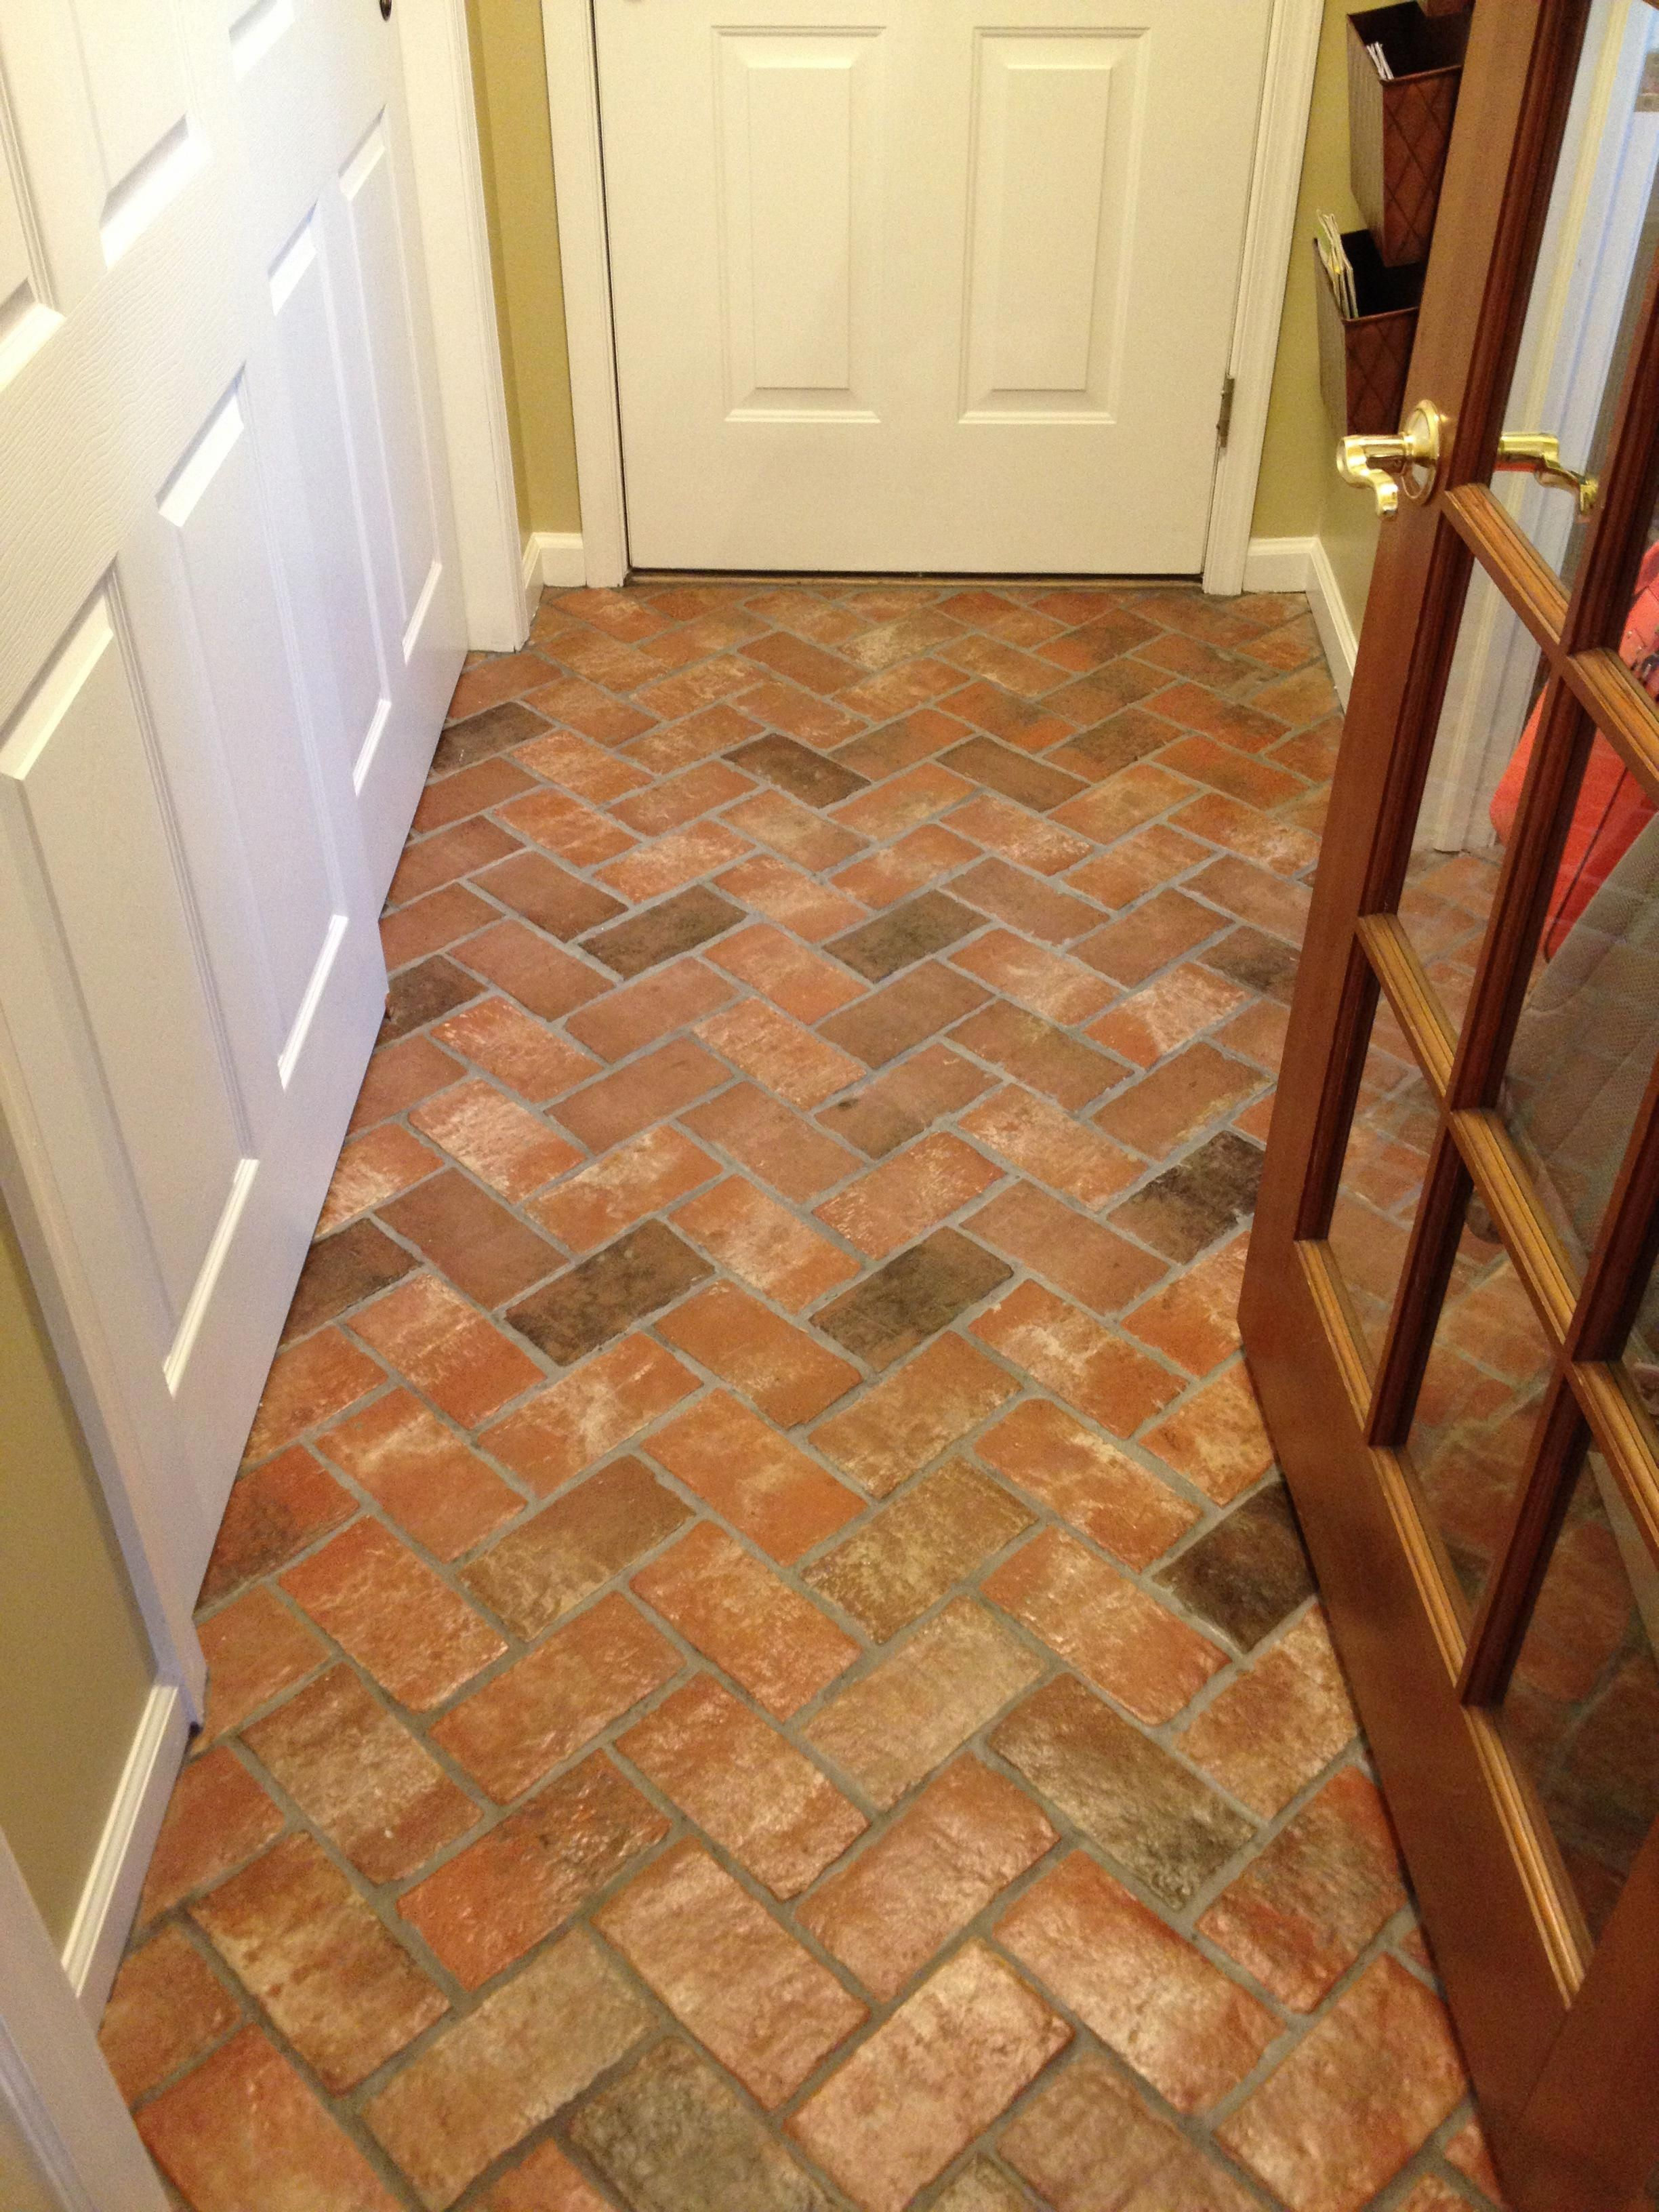 Wright S Ferry Brick Tile Floor Marietta Color Mix With A Shiny Sealer Interioranglesdefinition Brick Tiles Brick Floor Kitchen Brick Tile Floor